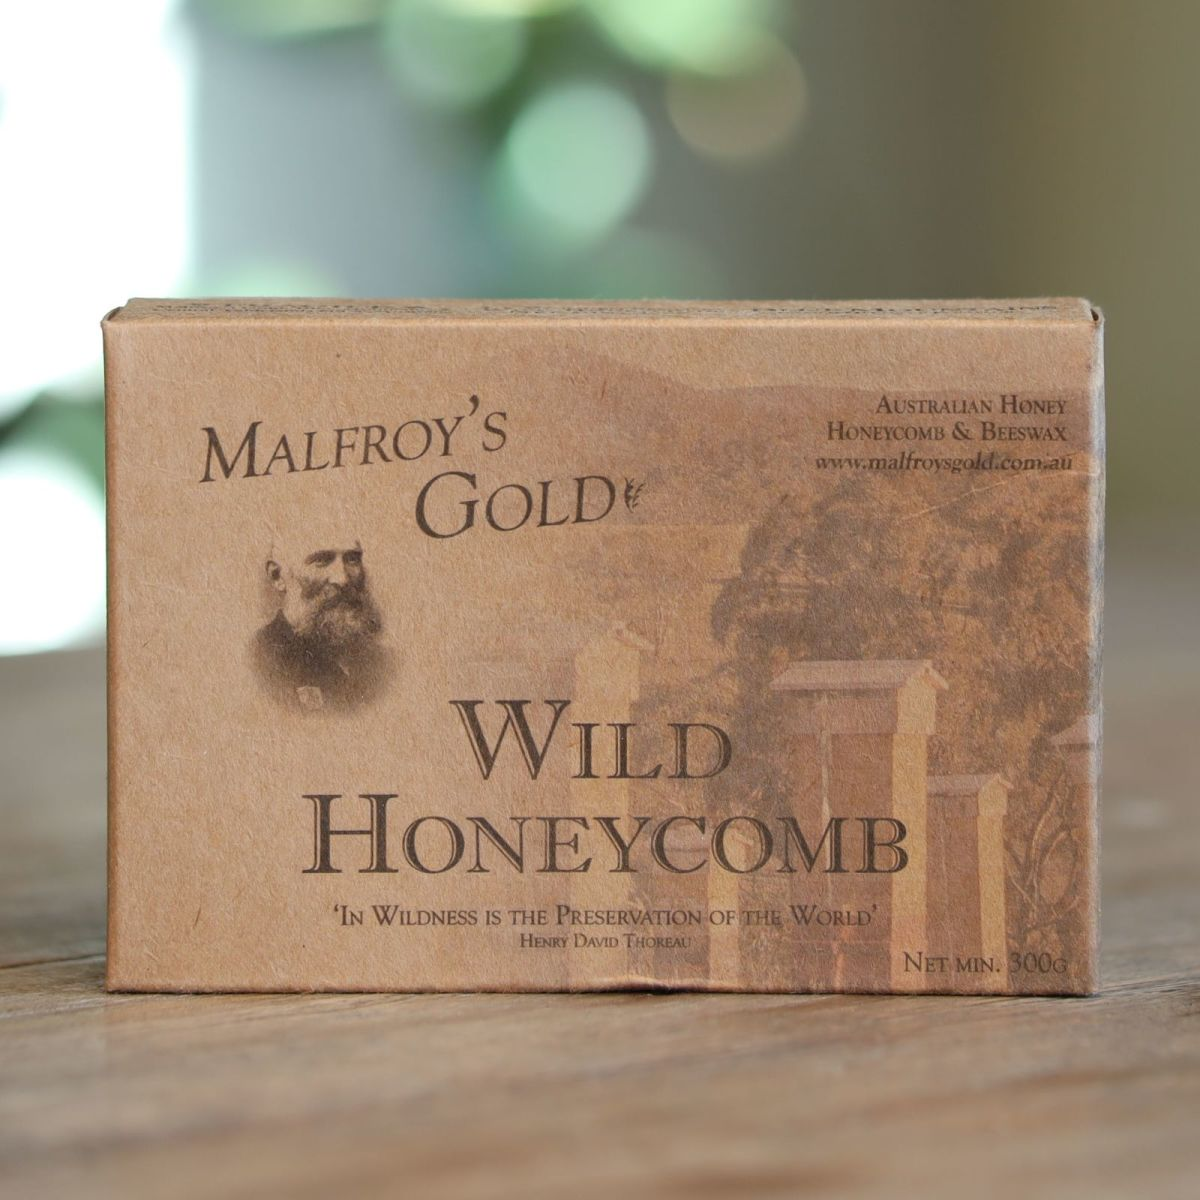 Malfroy's Gold - Wild Honeycomb